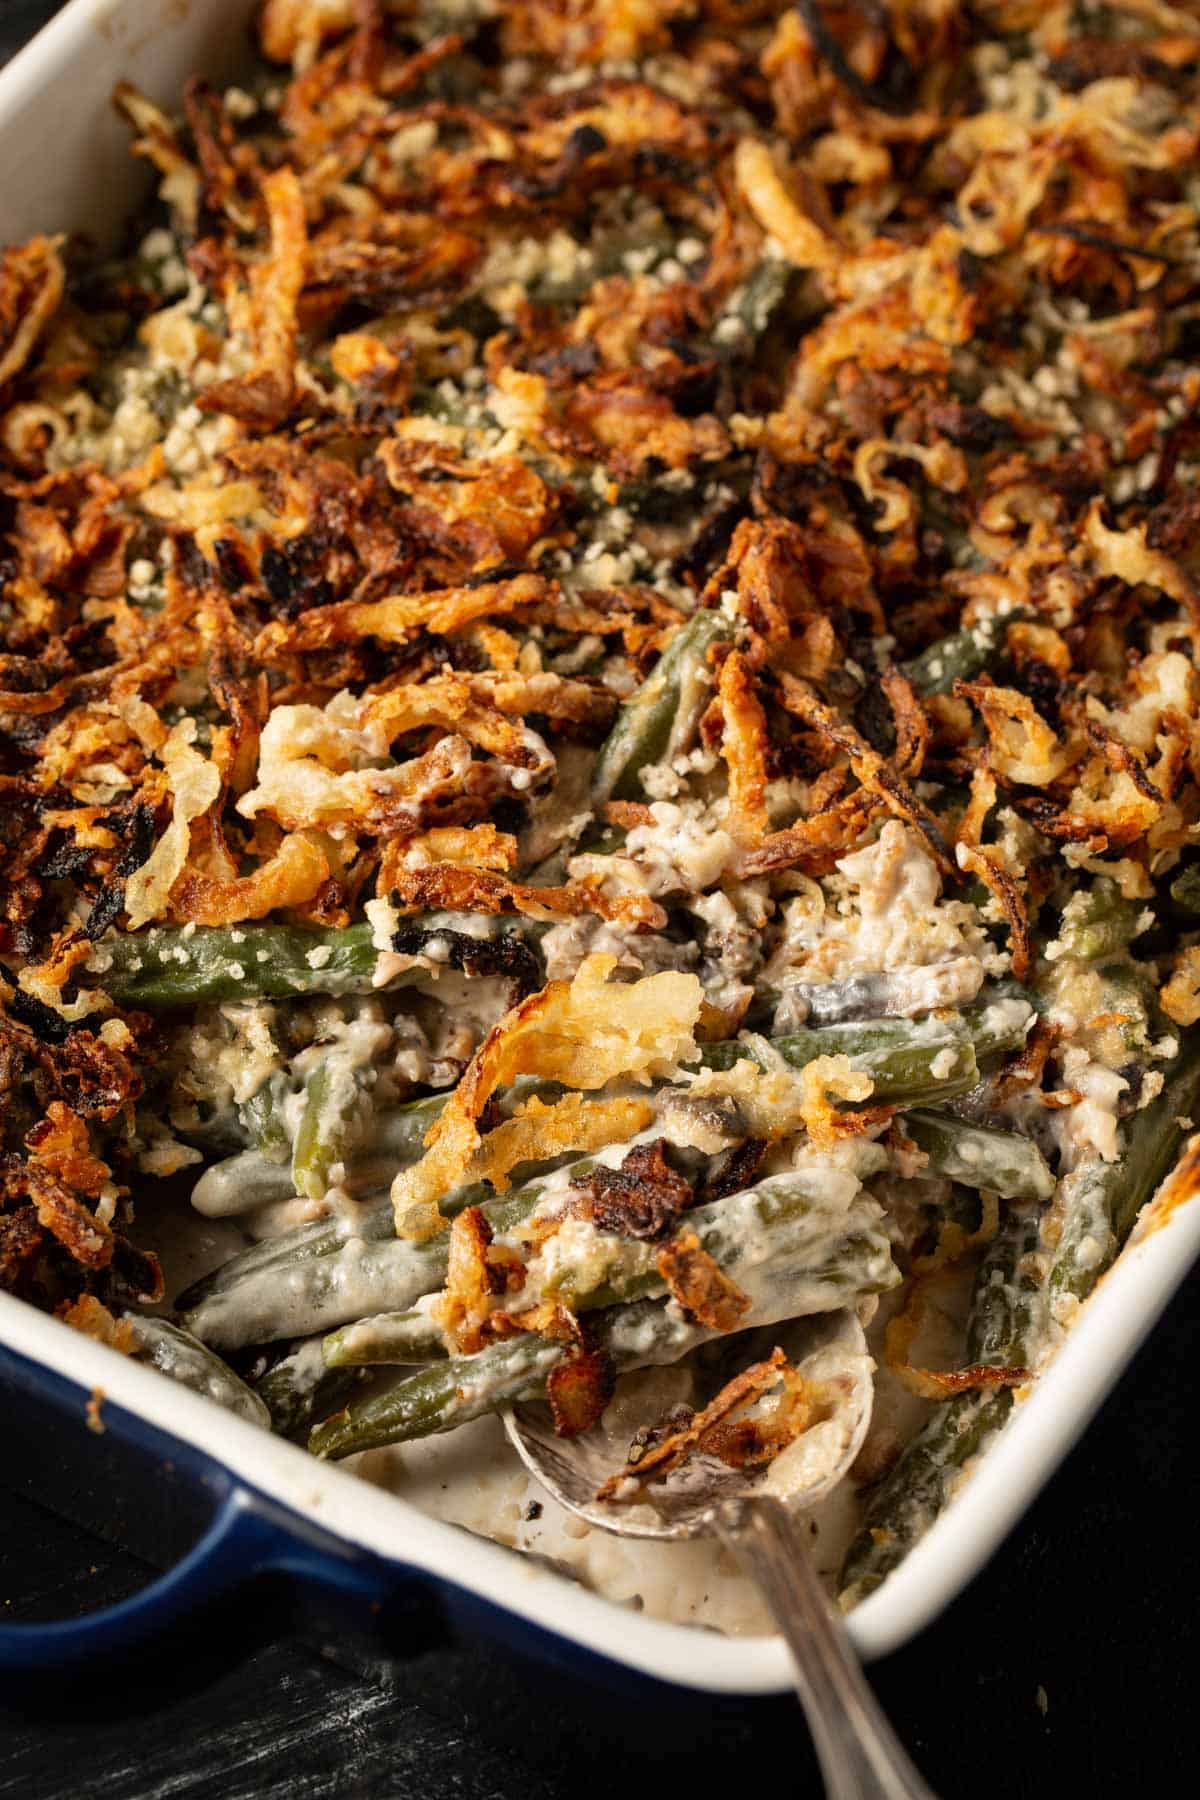 A serving spoon in a green bean casserole made from scratch,